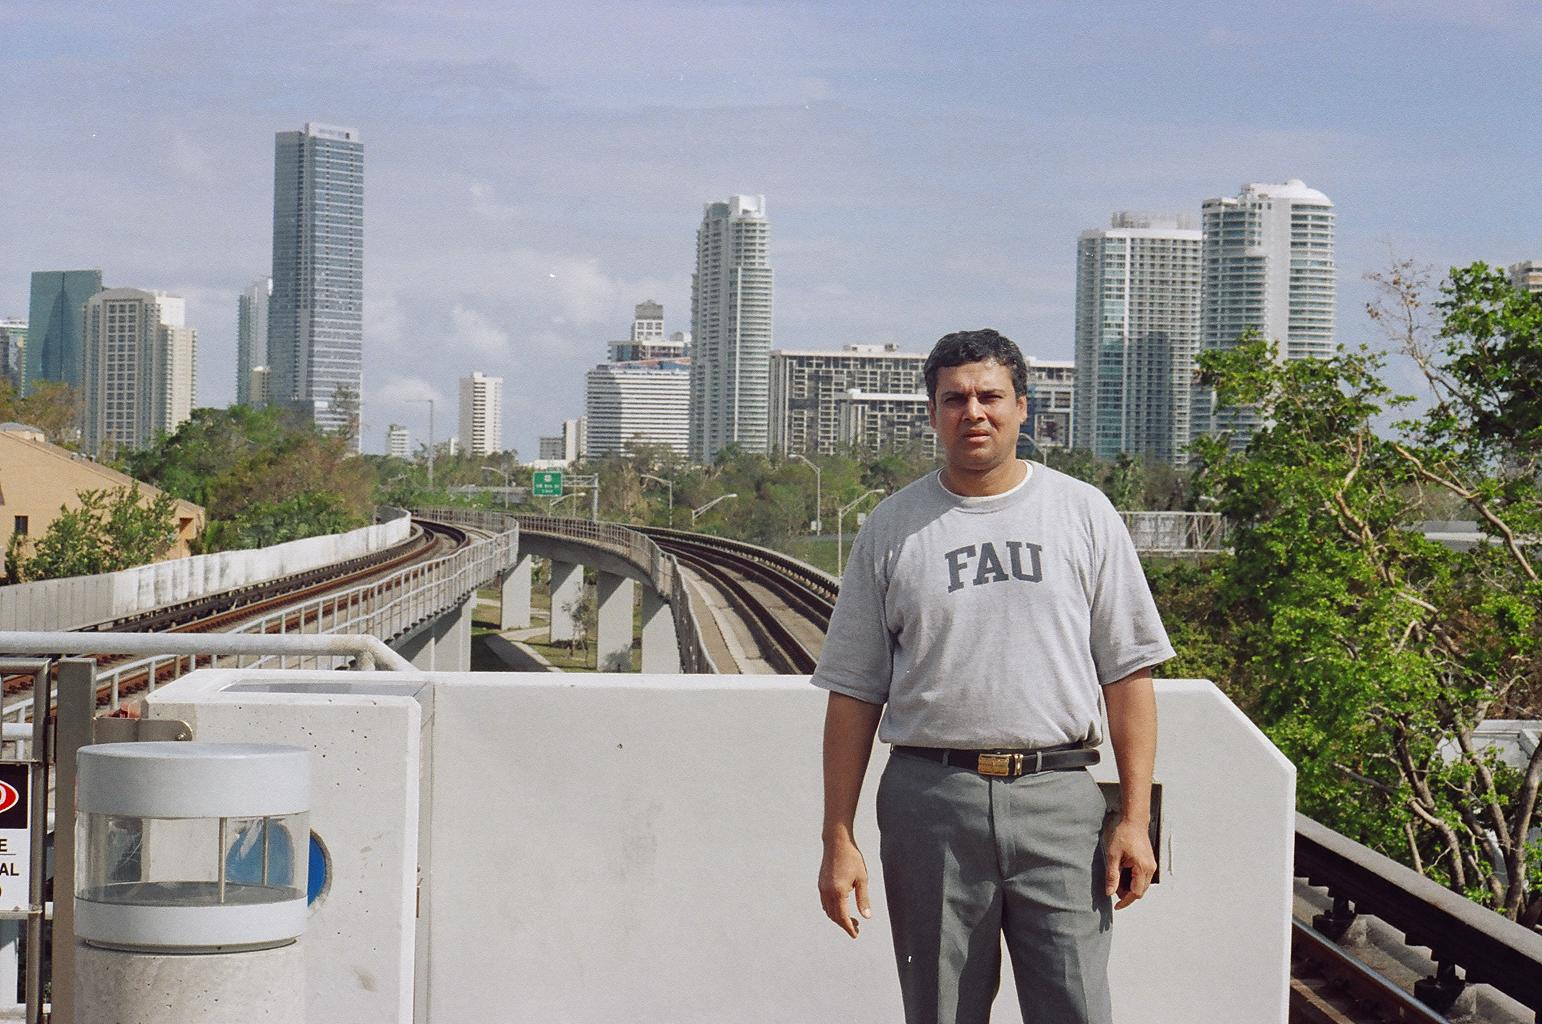 Myself at Vizcaya in Miami, with the Brickell Skyline in the background (2004)